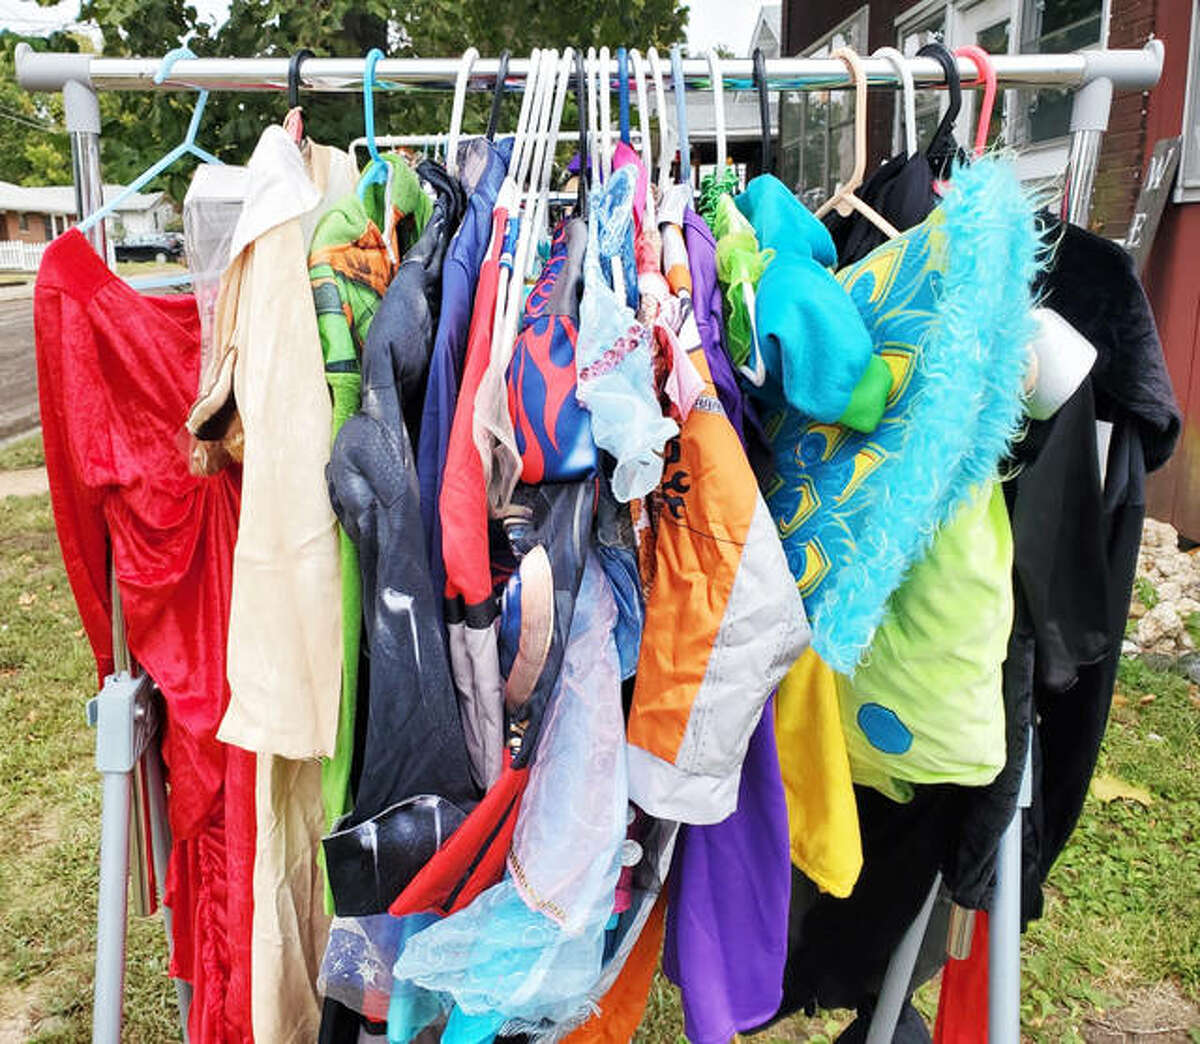 Halloween costumes hang on a rack at Helping Hearts Grow sharing station at 134 Hartnett Ave., Wood River. Visitors can take one costume per child while supplies last. The organization, founded by Rachel Porter-Hunter, also encourages people to bring a costume from last year and hang it on the rack. The no-contact sharing station is open for all.